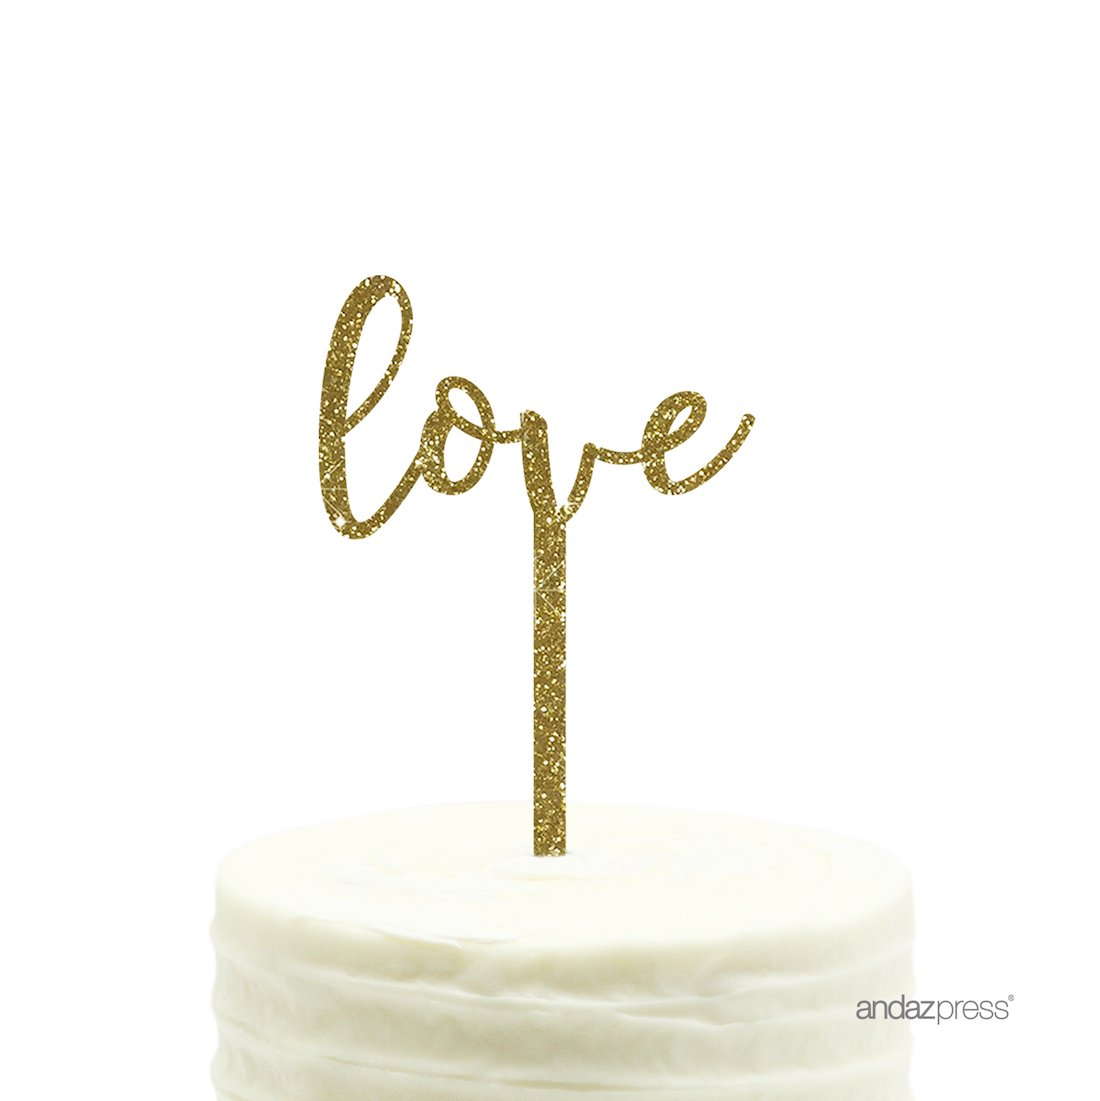 Andaz Press Wedding Acrylic Cake Toppers, Gold Glitter, Love, 1-Pack, 25th 50th Anniversary Decor Decorations